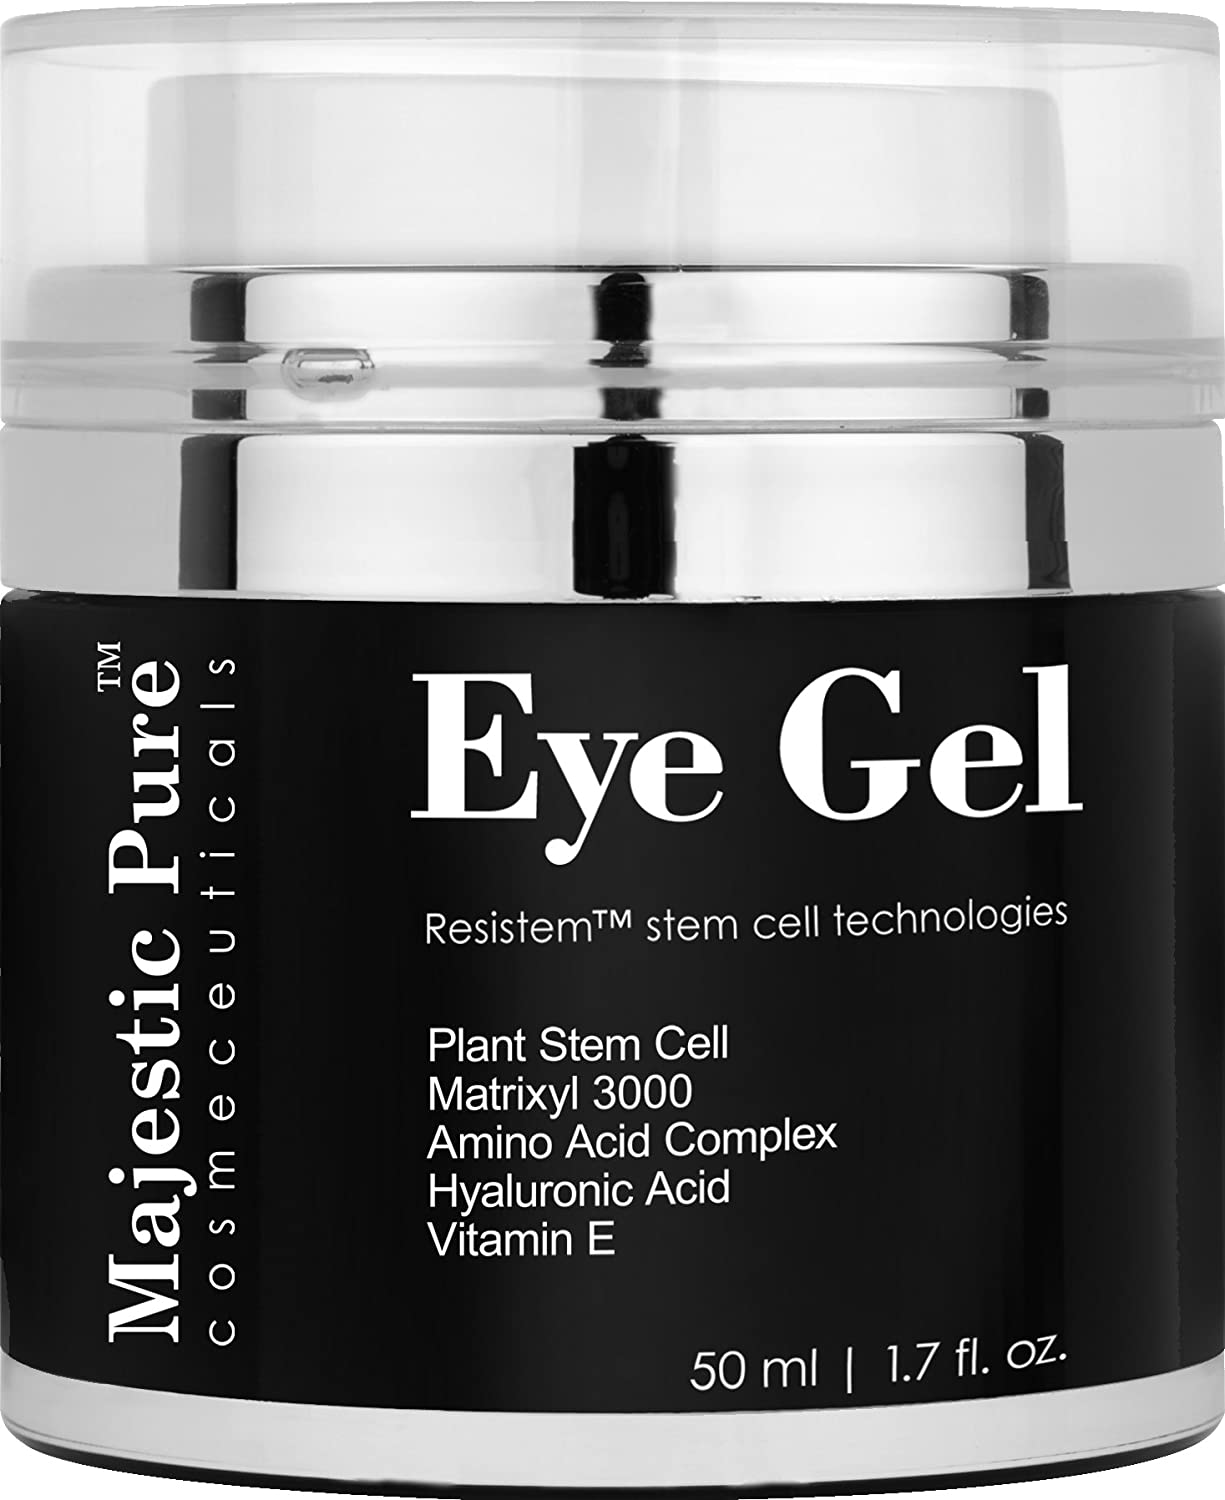 Majestic Pure Anti Aging and Skin Firming Eye Gel for Dark Circle, Wrinkles, Eye Puffiness, Loss of Tone and Resilience, 1.7 fl. oz